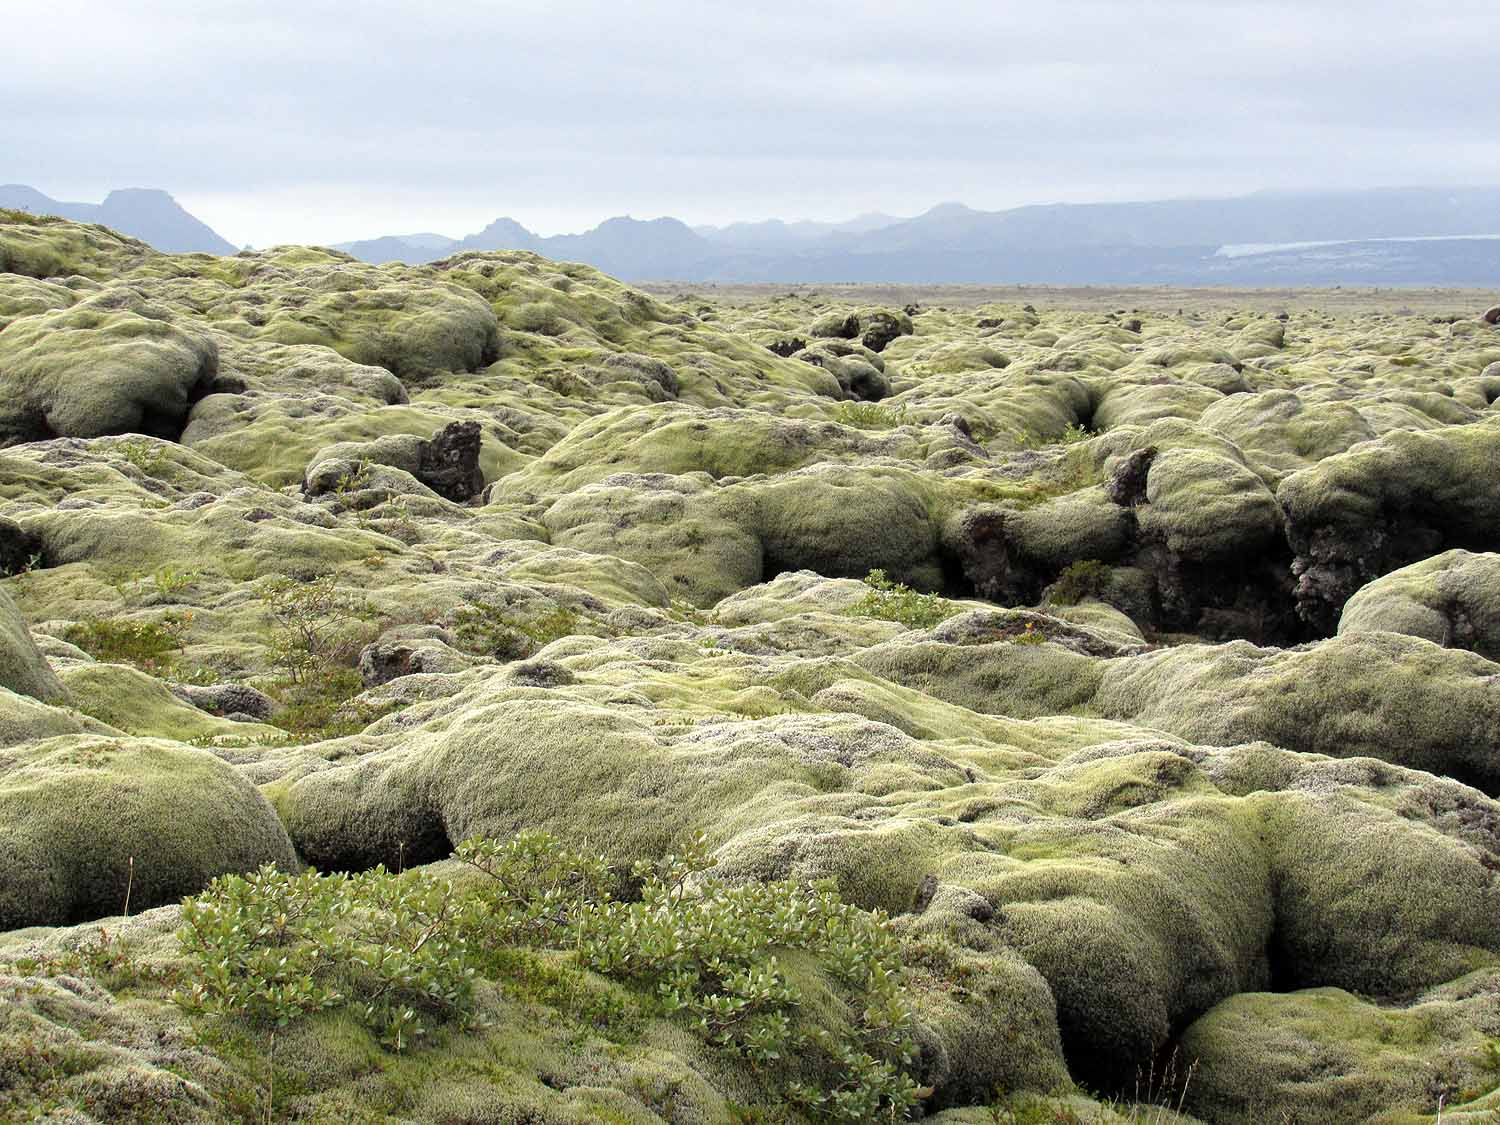 Eldhraun  - I never thought I could get so excited about moss. Eldhraun is the largest lava flow in the world. Created by the Skaftareldar (the Skafta River Fires) eruption in 1783-1784, this gigantic 565 square kilometer site is not to missed! I'll never forget the squishy feeling beneath my feet as we bounced from rock to rock like kids on a playground. This place is awesome!